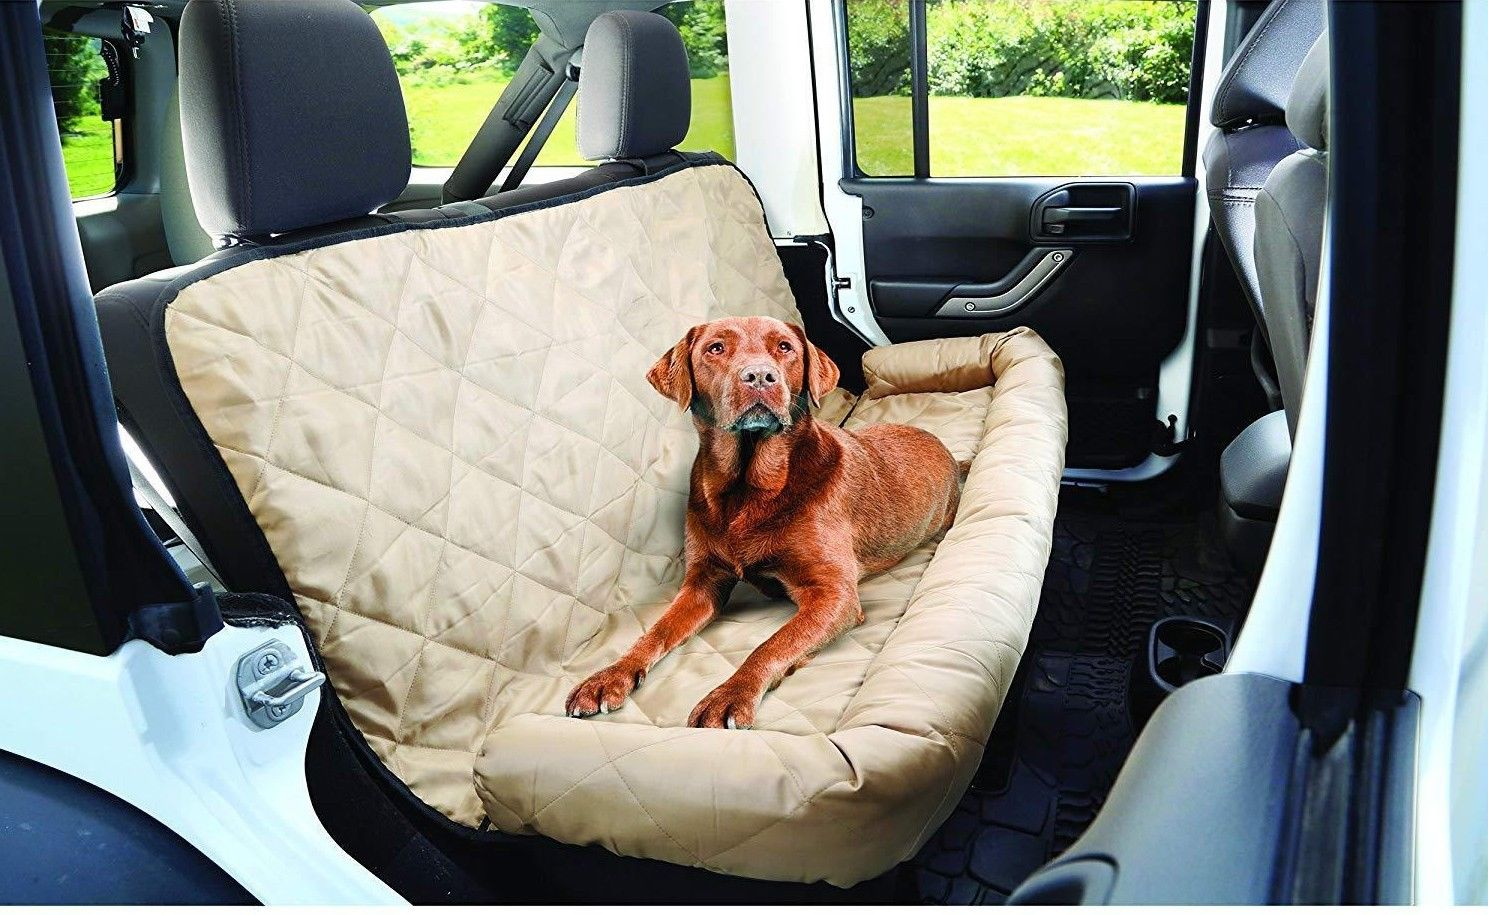 Quilted Comfy Dog Car Seat Covers - Light Brown Car Seat Cover for Dogs